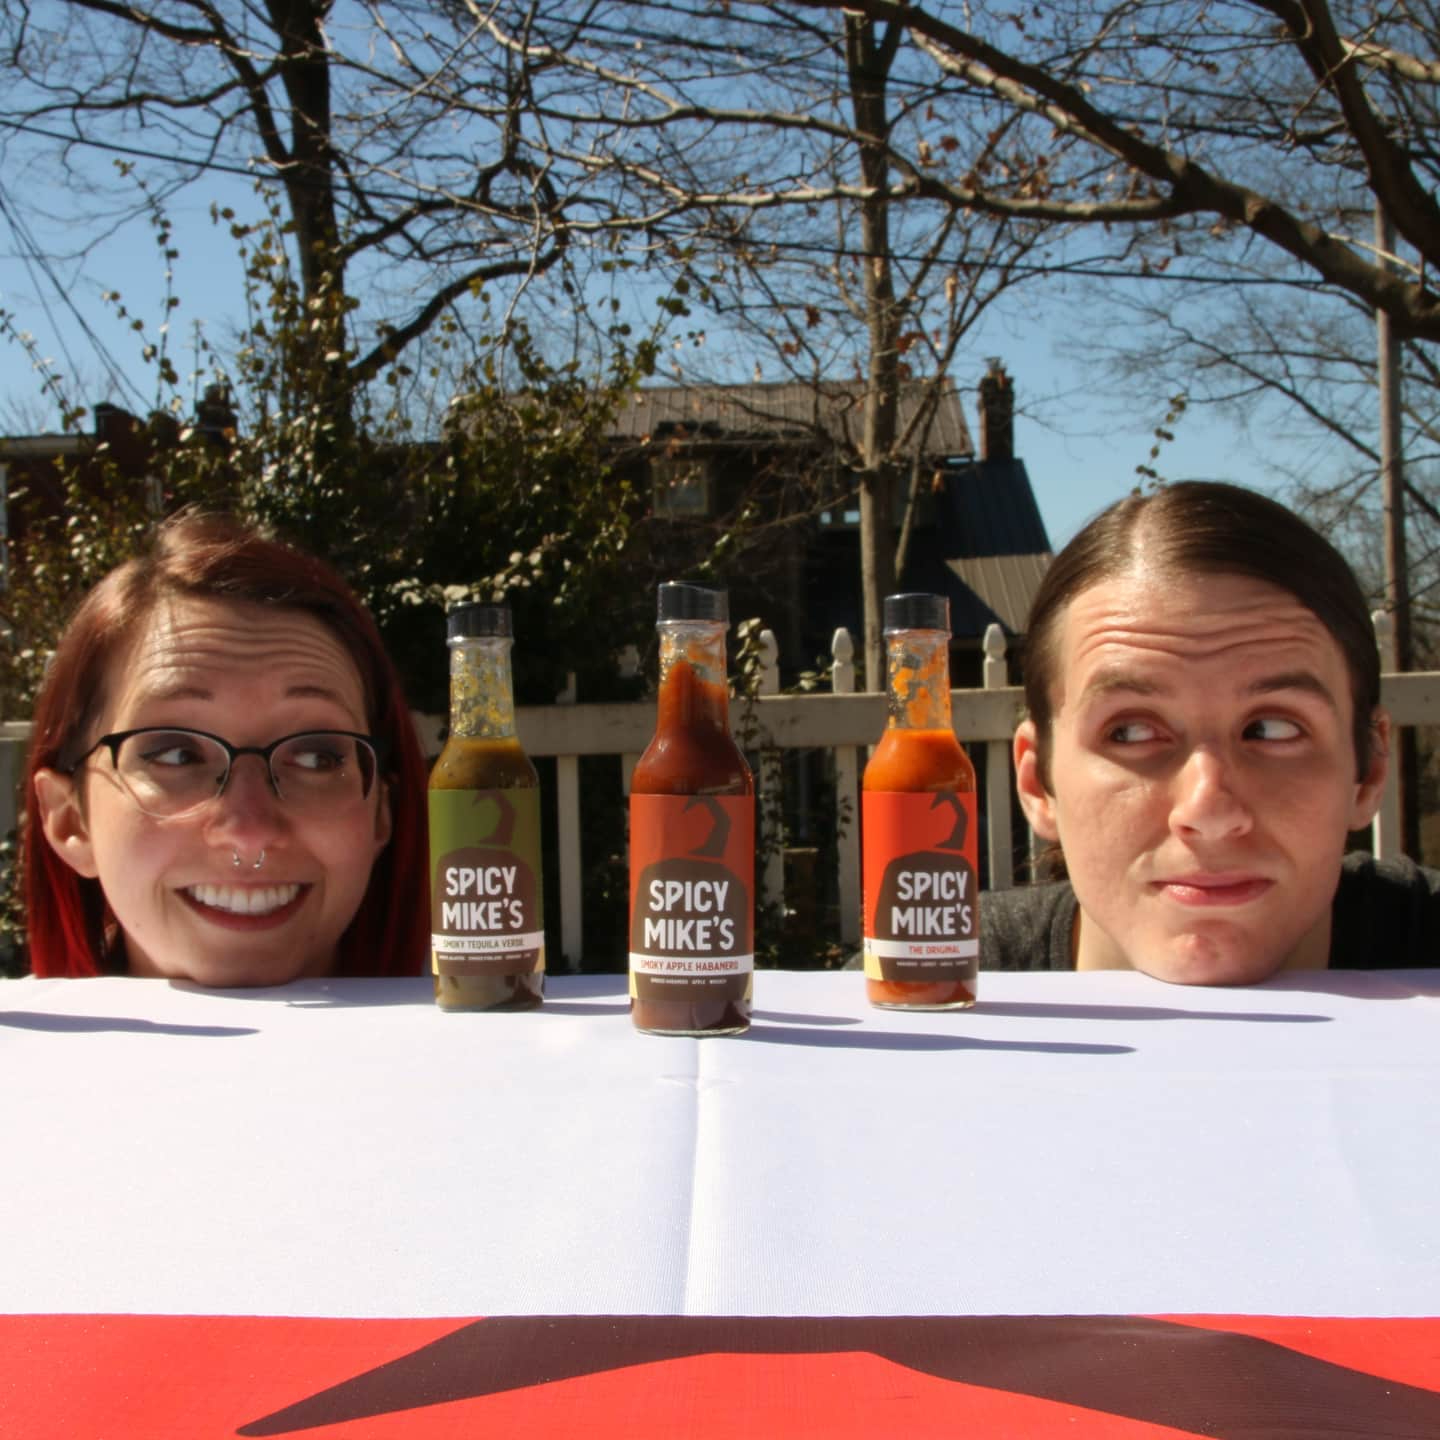 20-Spicy Mike's Hot Sauce